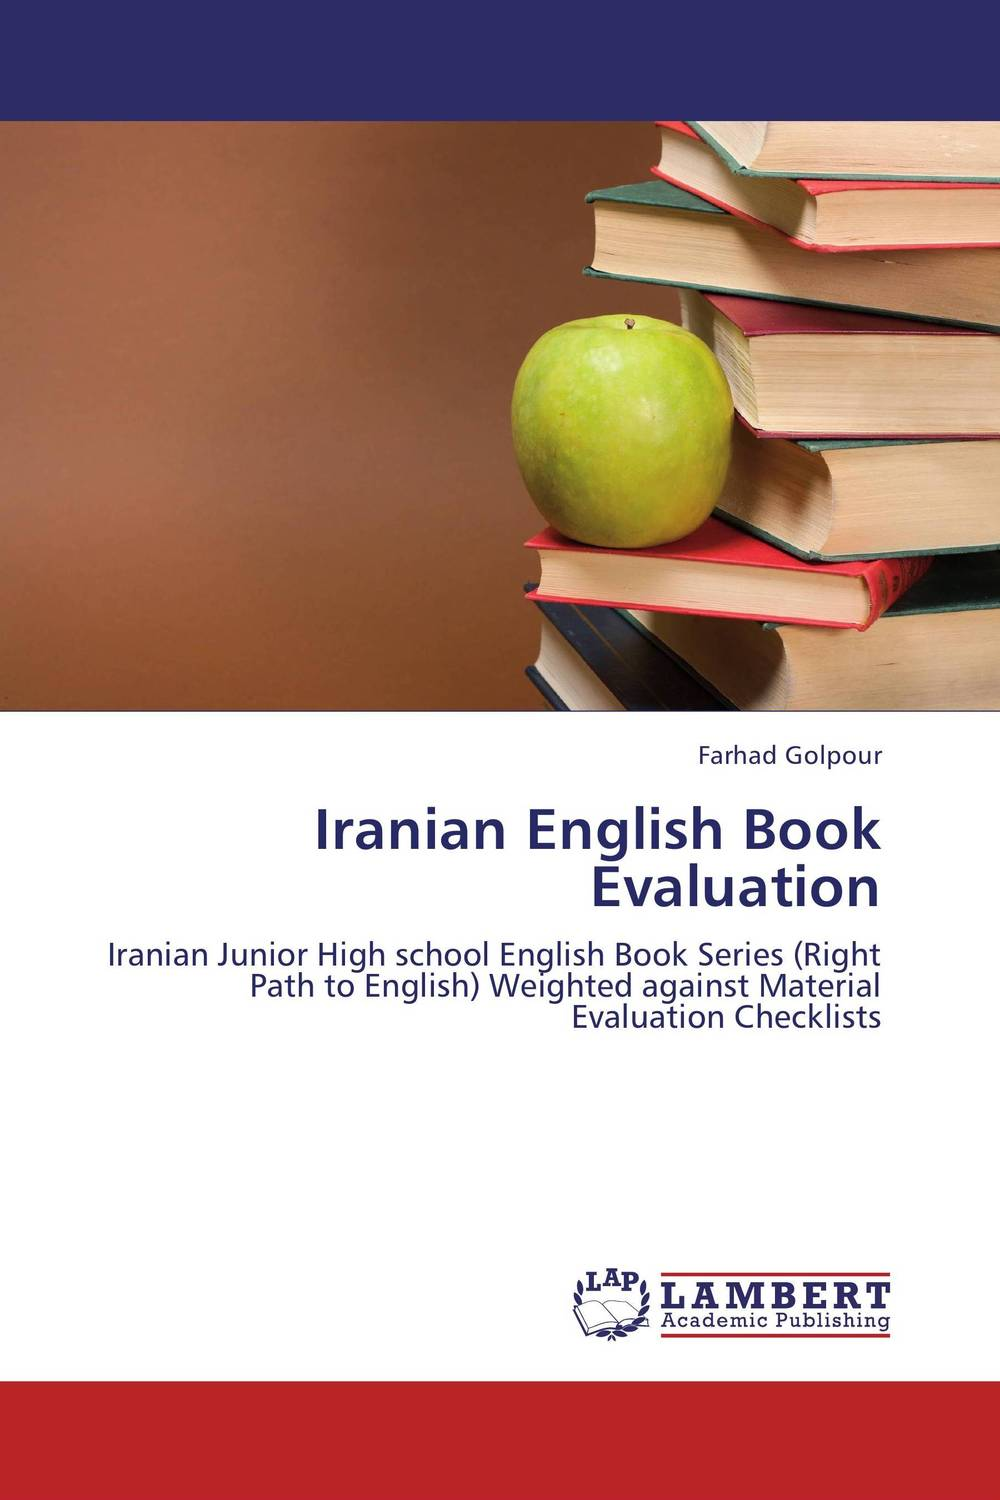 Iranian English Book Evaluation the role of evaluation as a mechanism for advancing principal practice